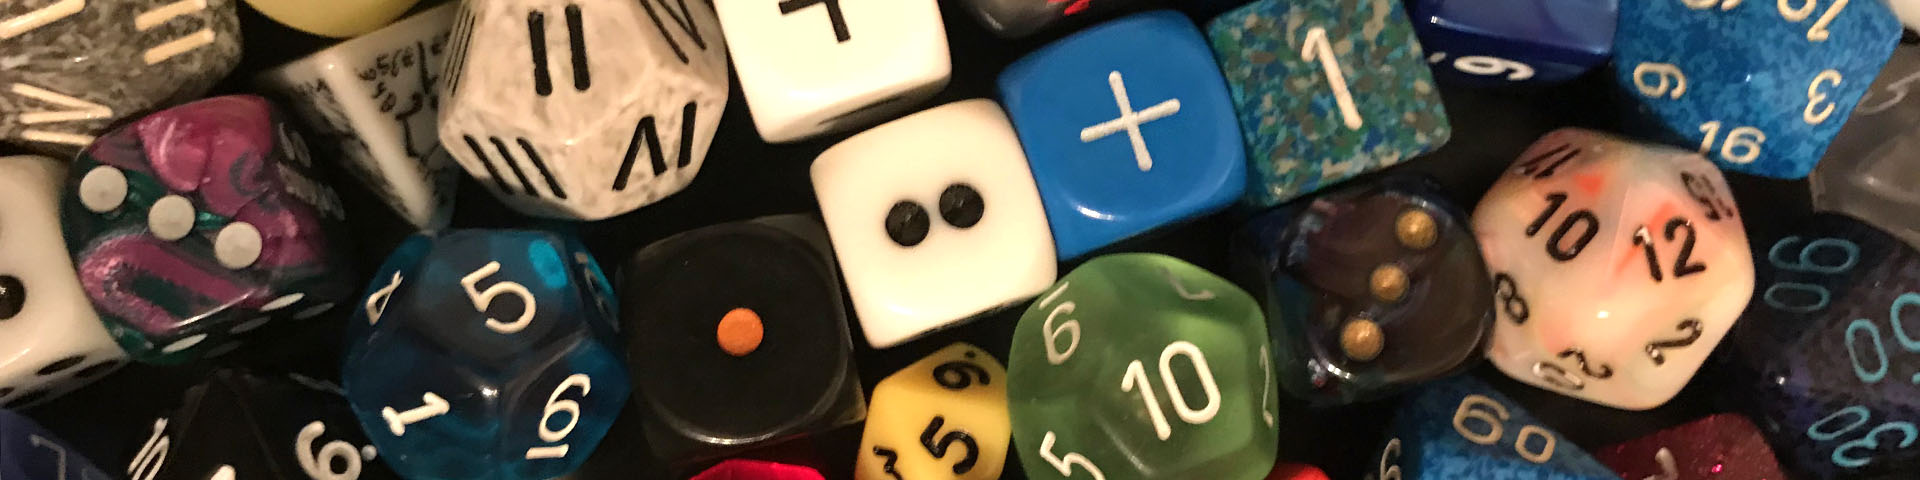 A collection of different sized and colored dice.